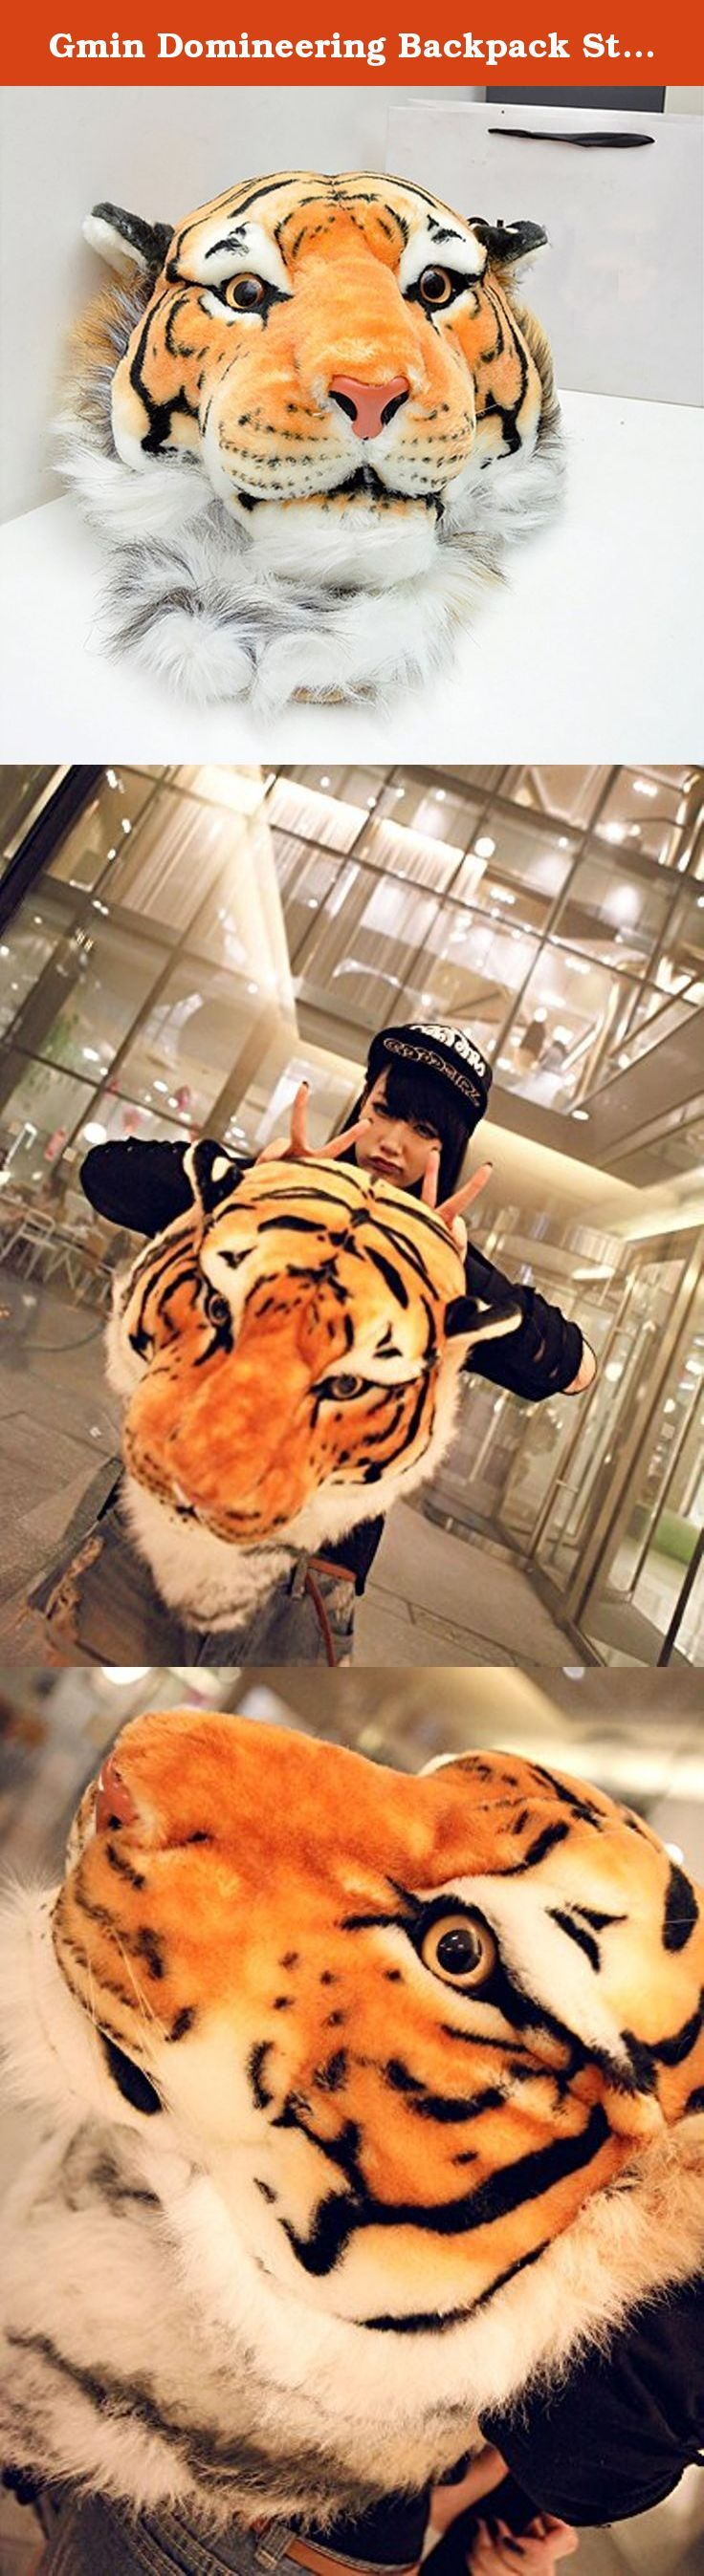 Gmin Domineering Backpack Stuffed Tiger Head 3D Simulation Personalised Shoulder Bag(m/39*37*50cm). • Size: 39*37*50CM[L*W*H] • Weight: 0.45KG • Wool material is acrylic material inside the tiger skull model is a high-density foam styrofoam • Very cool and personalised design • High simulation, play cool and act fun!.